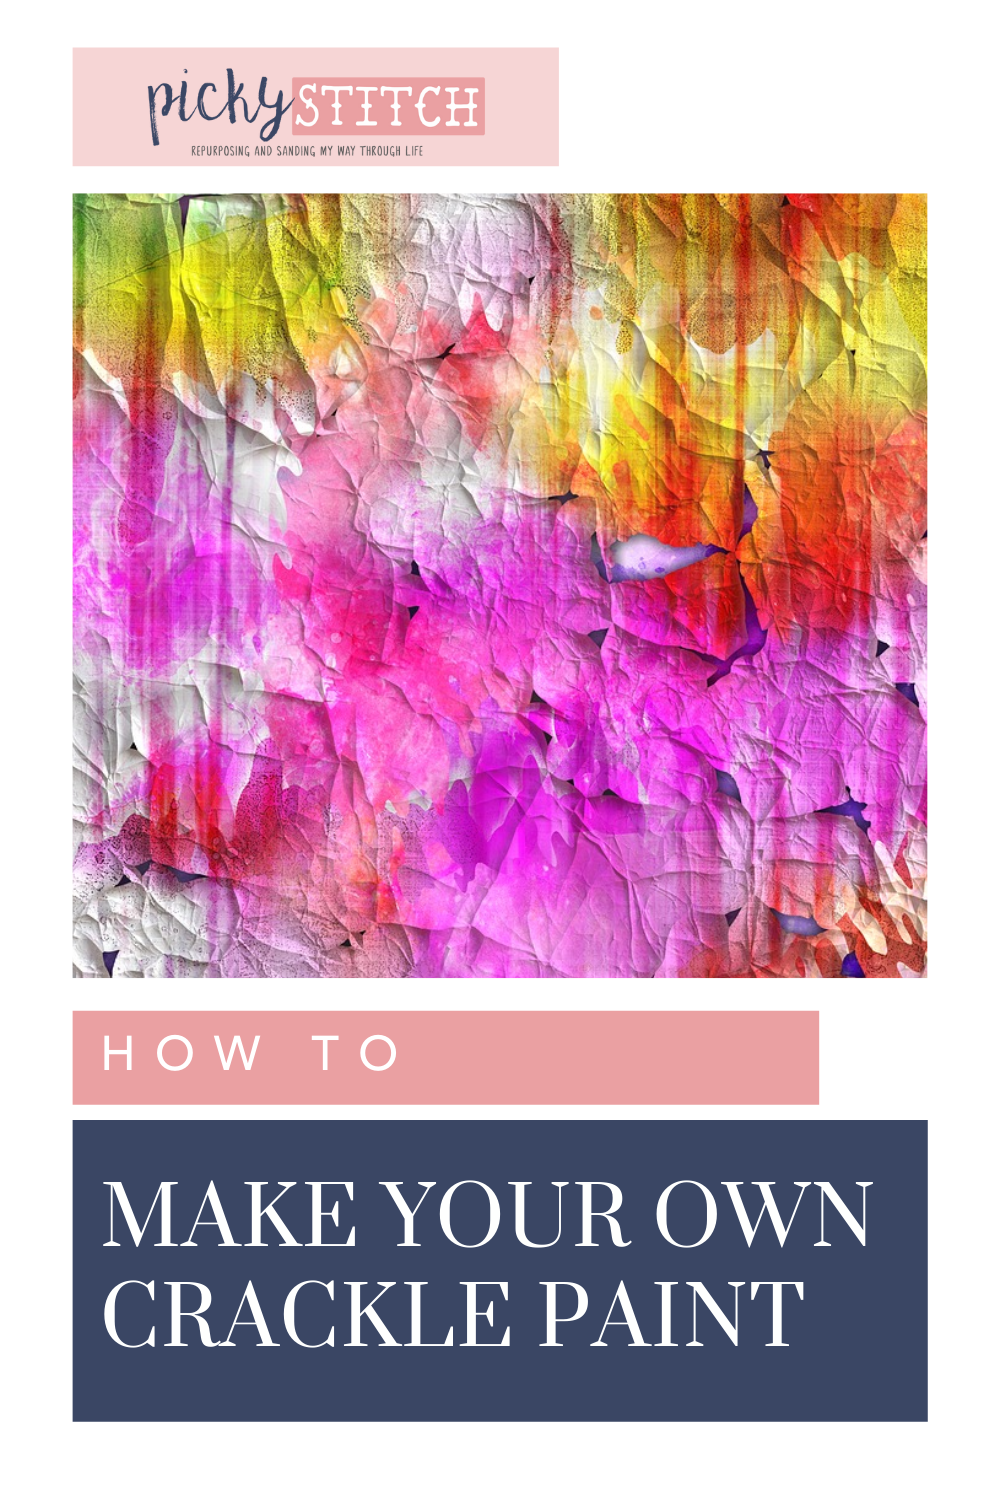 Pickystitch.com has all you need to know about DIY projects! If you've been getting crafty, learn how to make new mediums! Find out how to make crackle paint using glue!